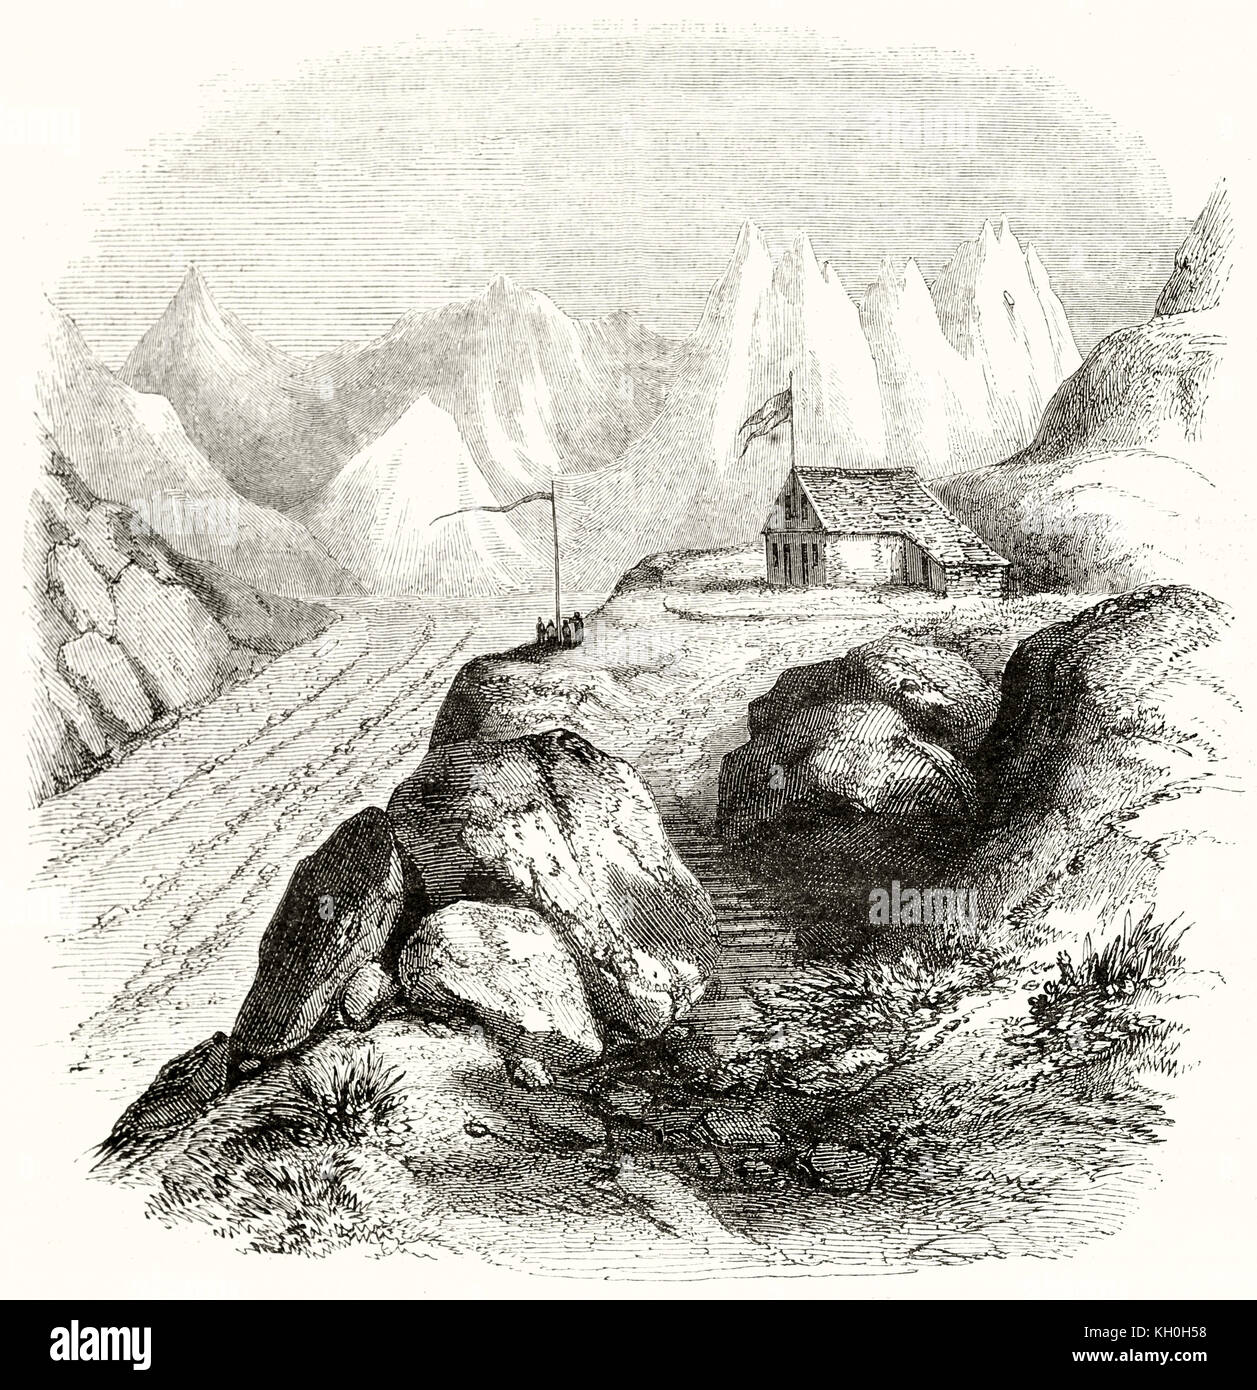 Old view of a chalet in the glacier of the Arc sources. By Armstrong, publ. on Magasin Pittoresque, Paris, 1847 - Stock Image